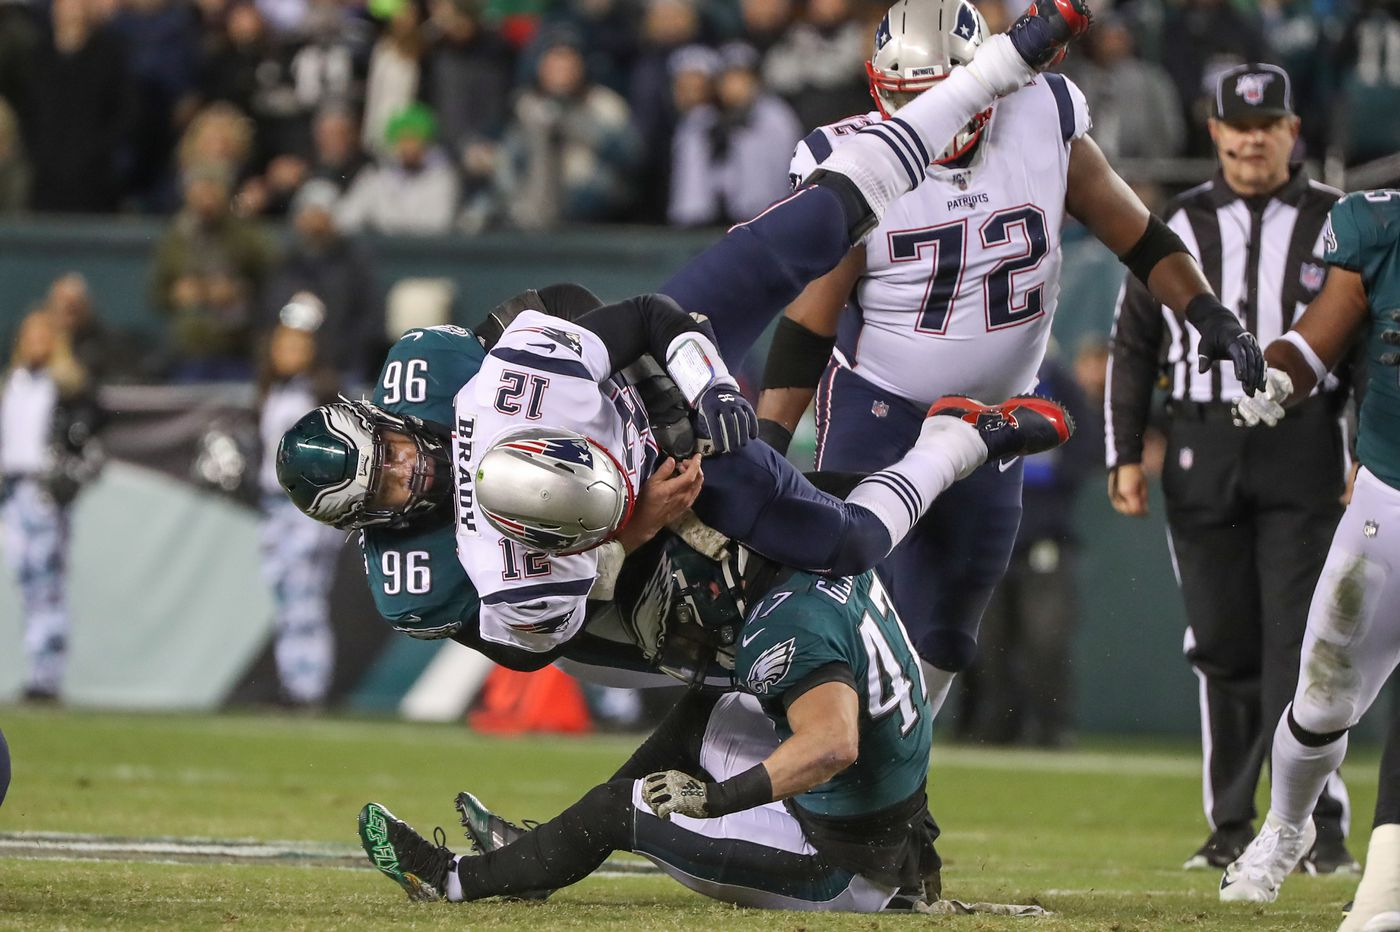 The Eagles probably need to get healthier to match up with Dallas this week, and win the East